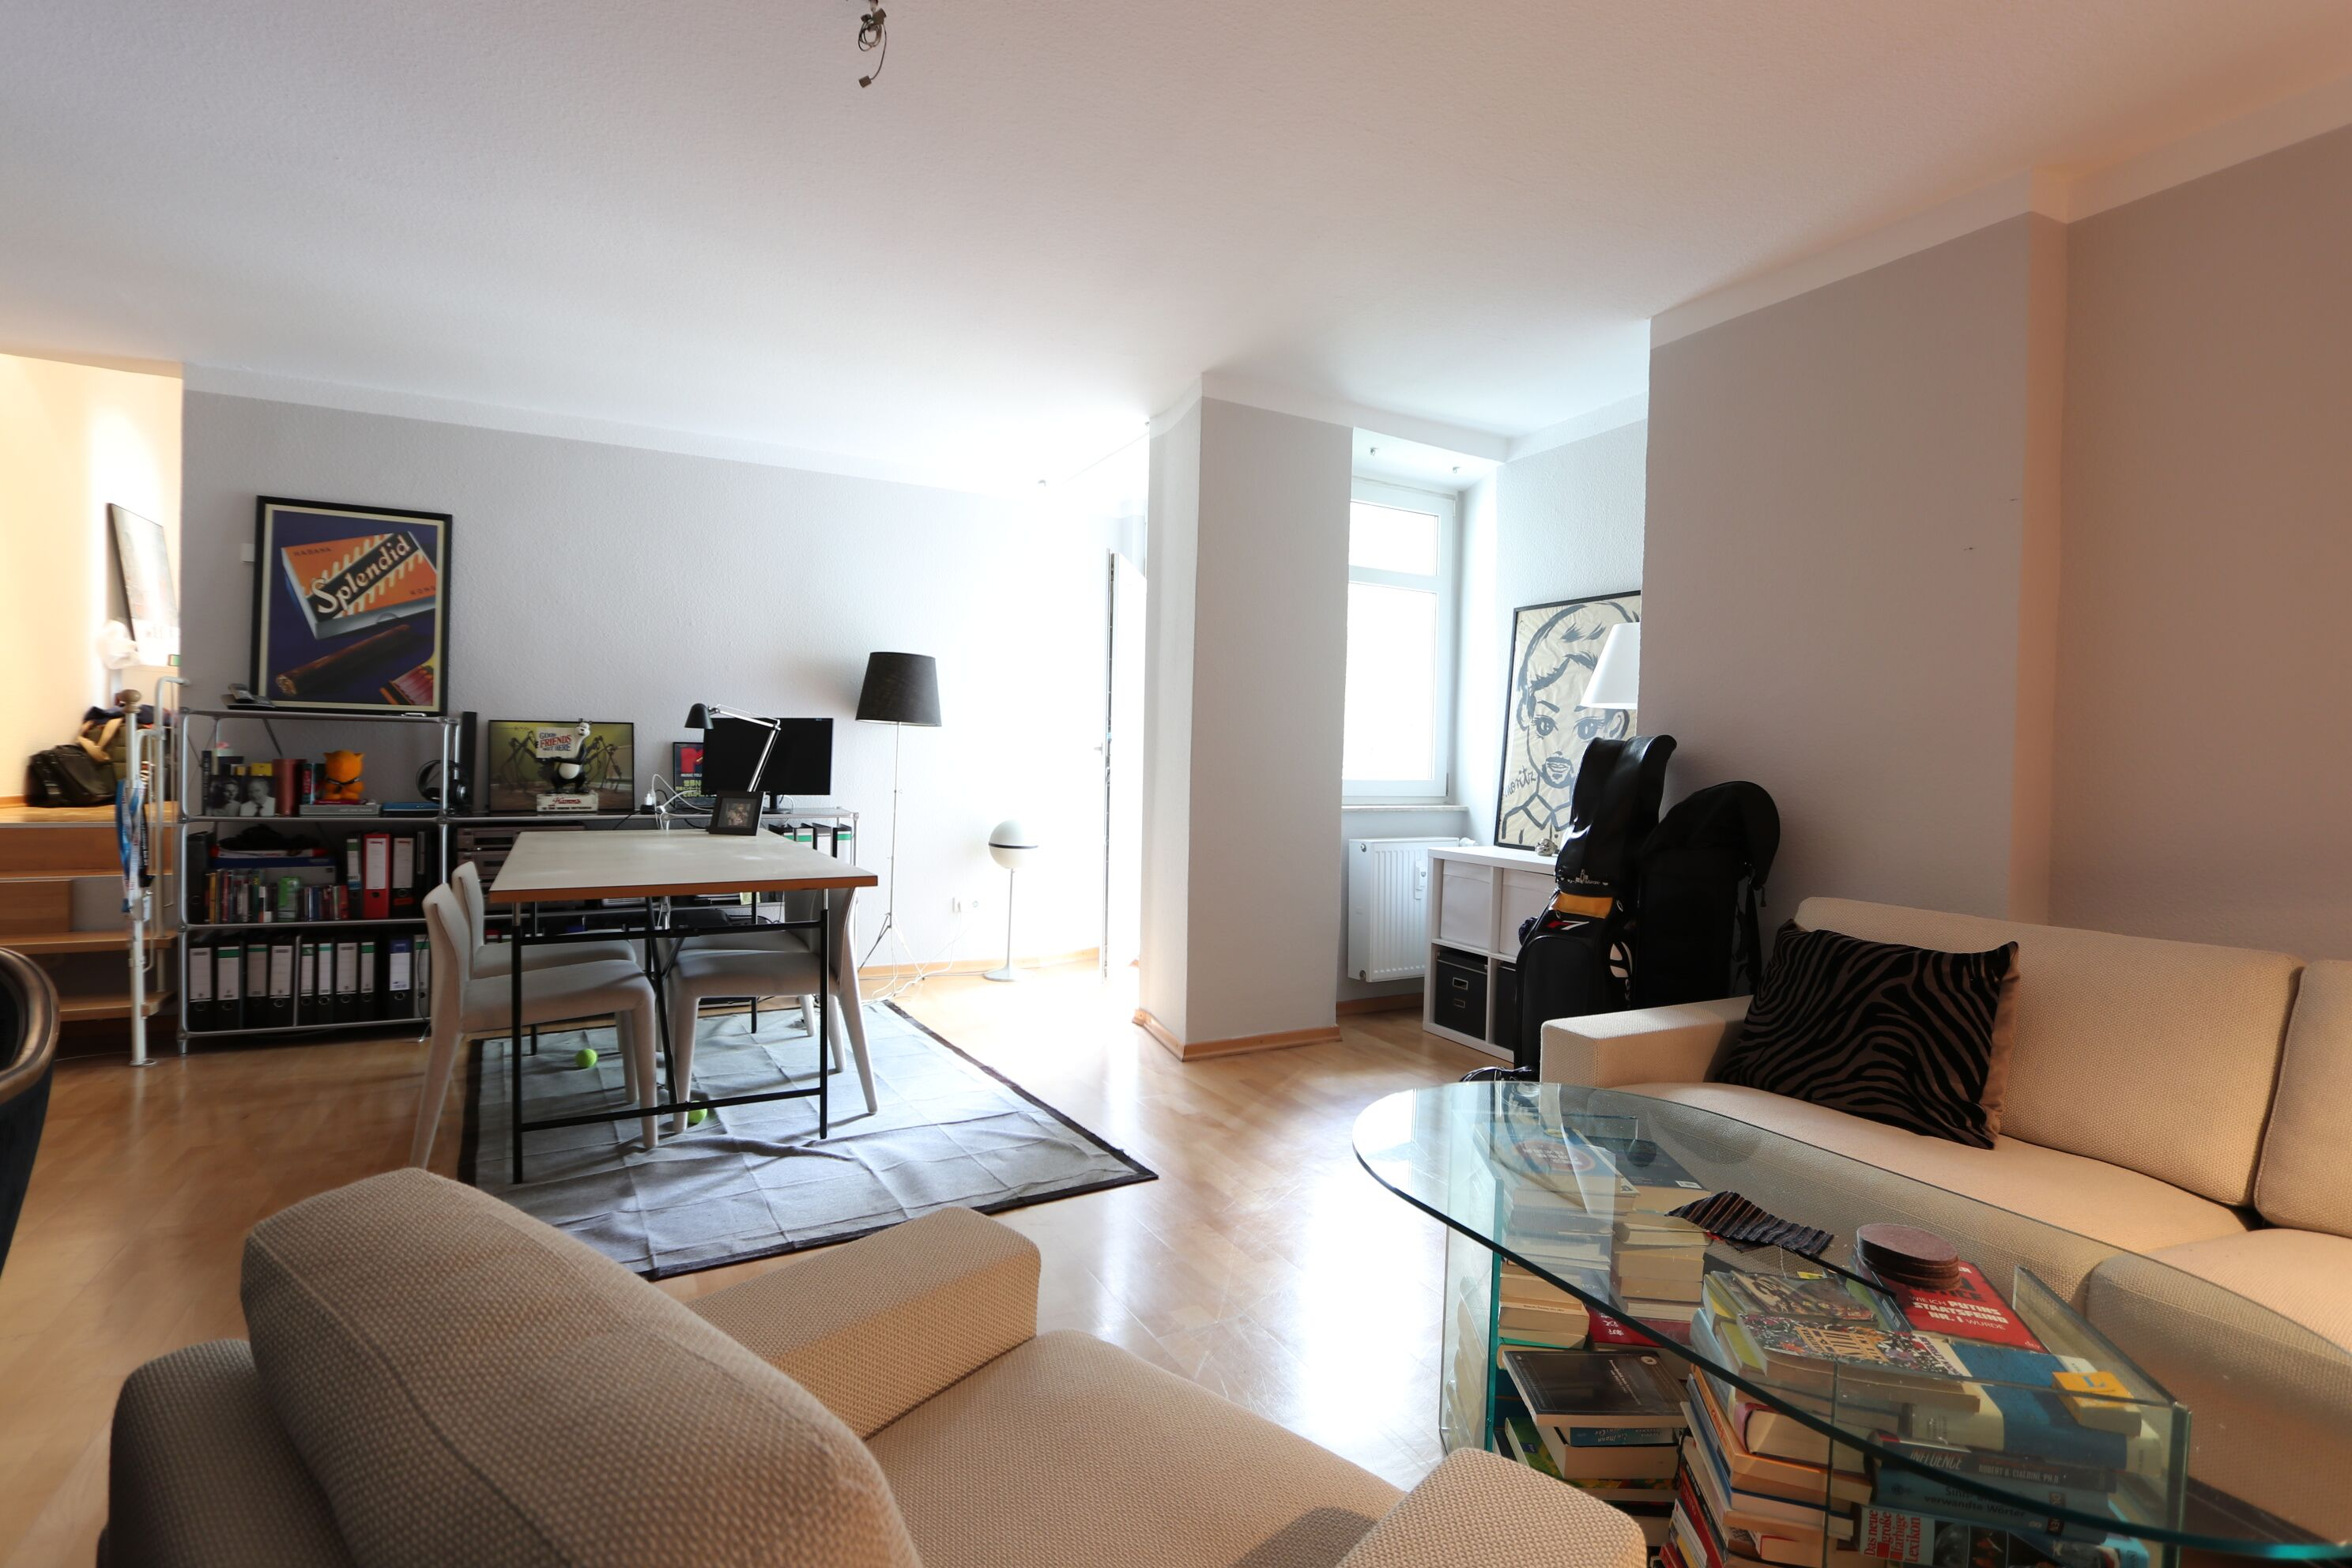 Unoccupied: 2 room apartment in top location of Berlin ...